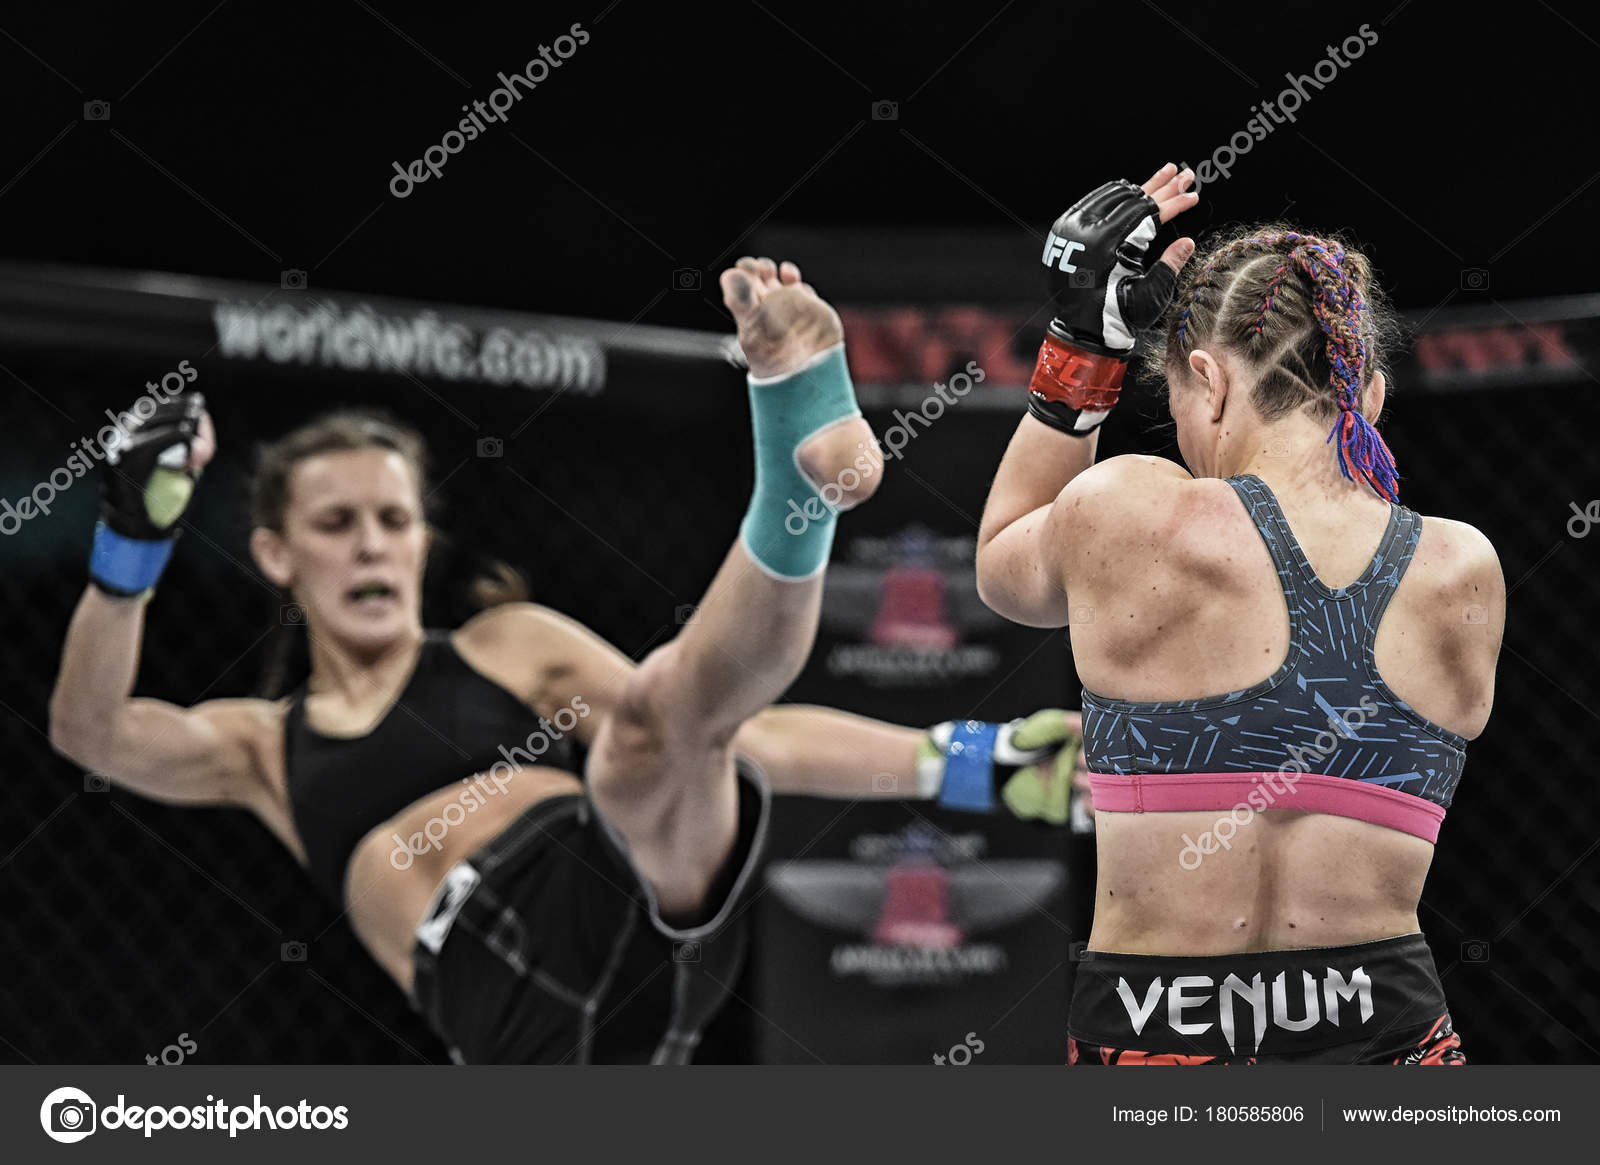 mma fighters fight at